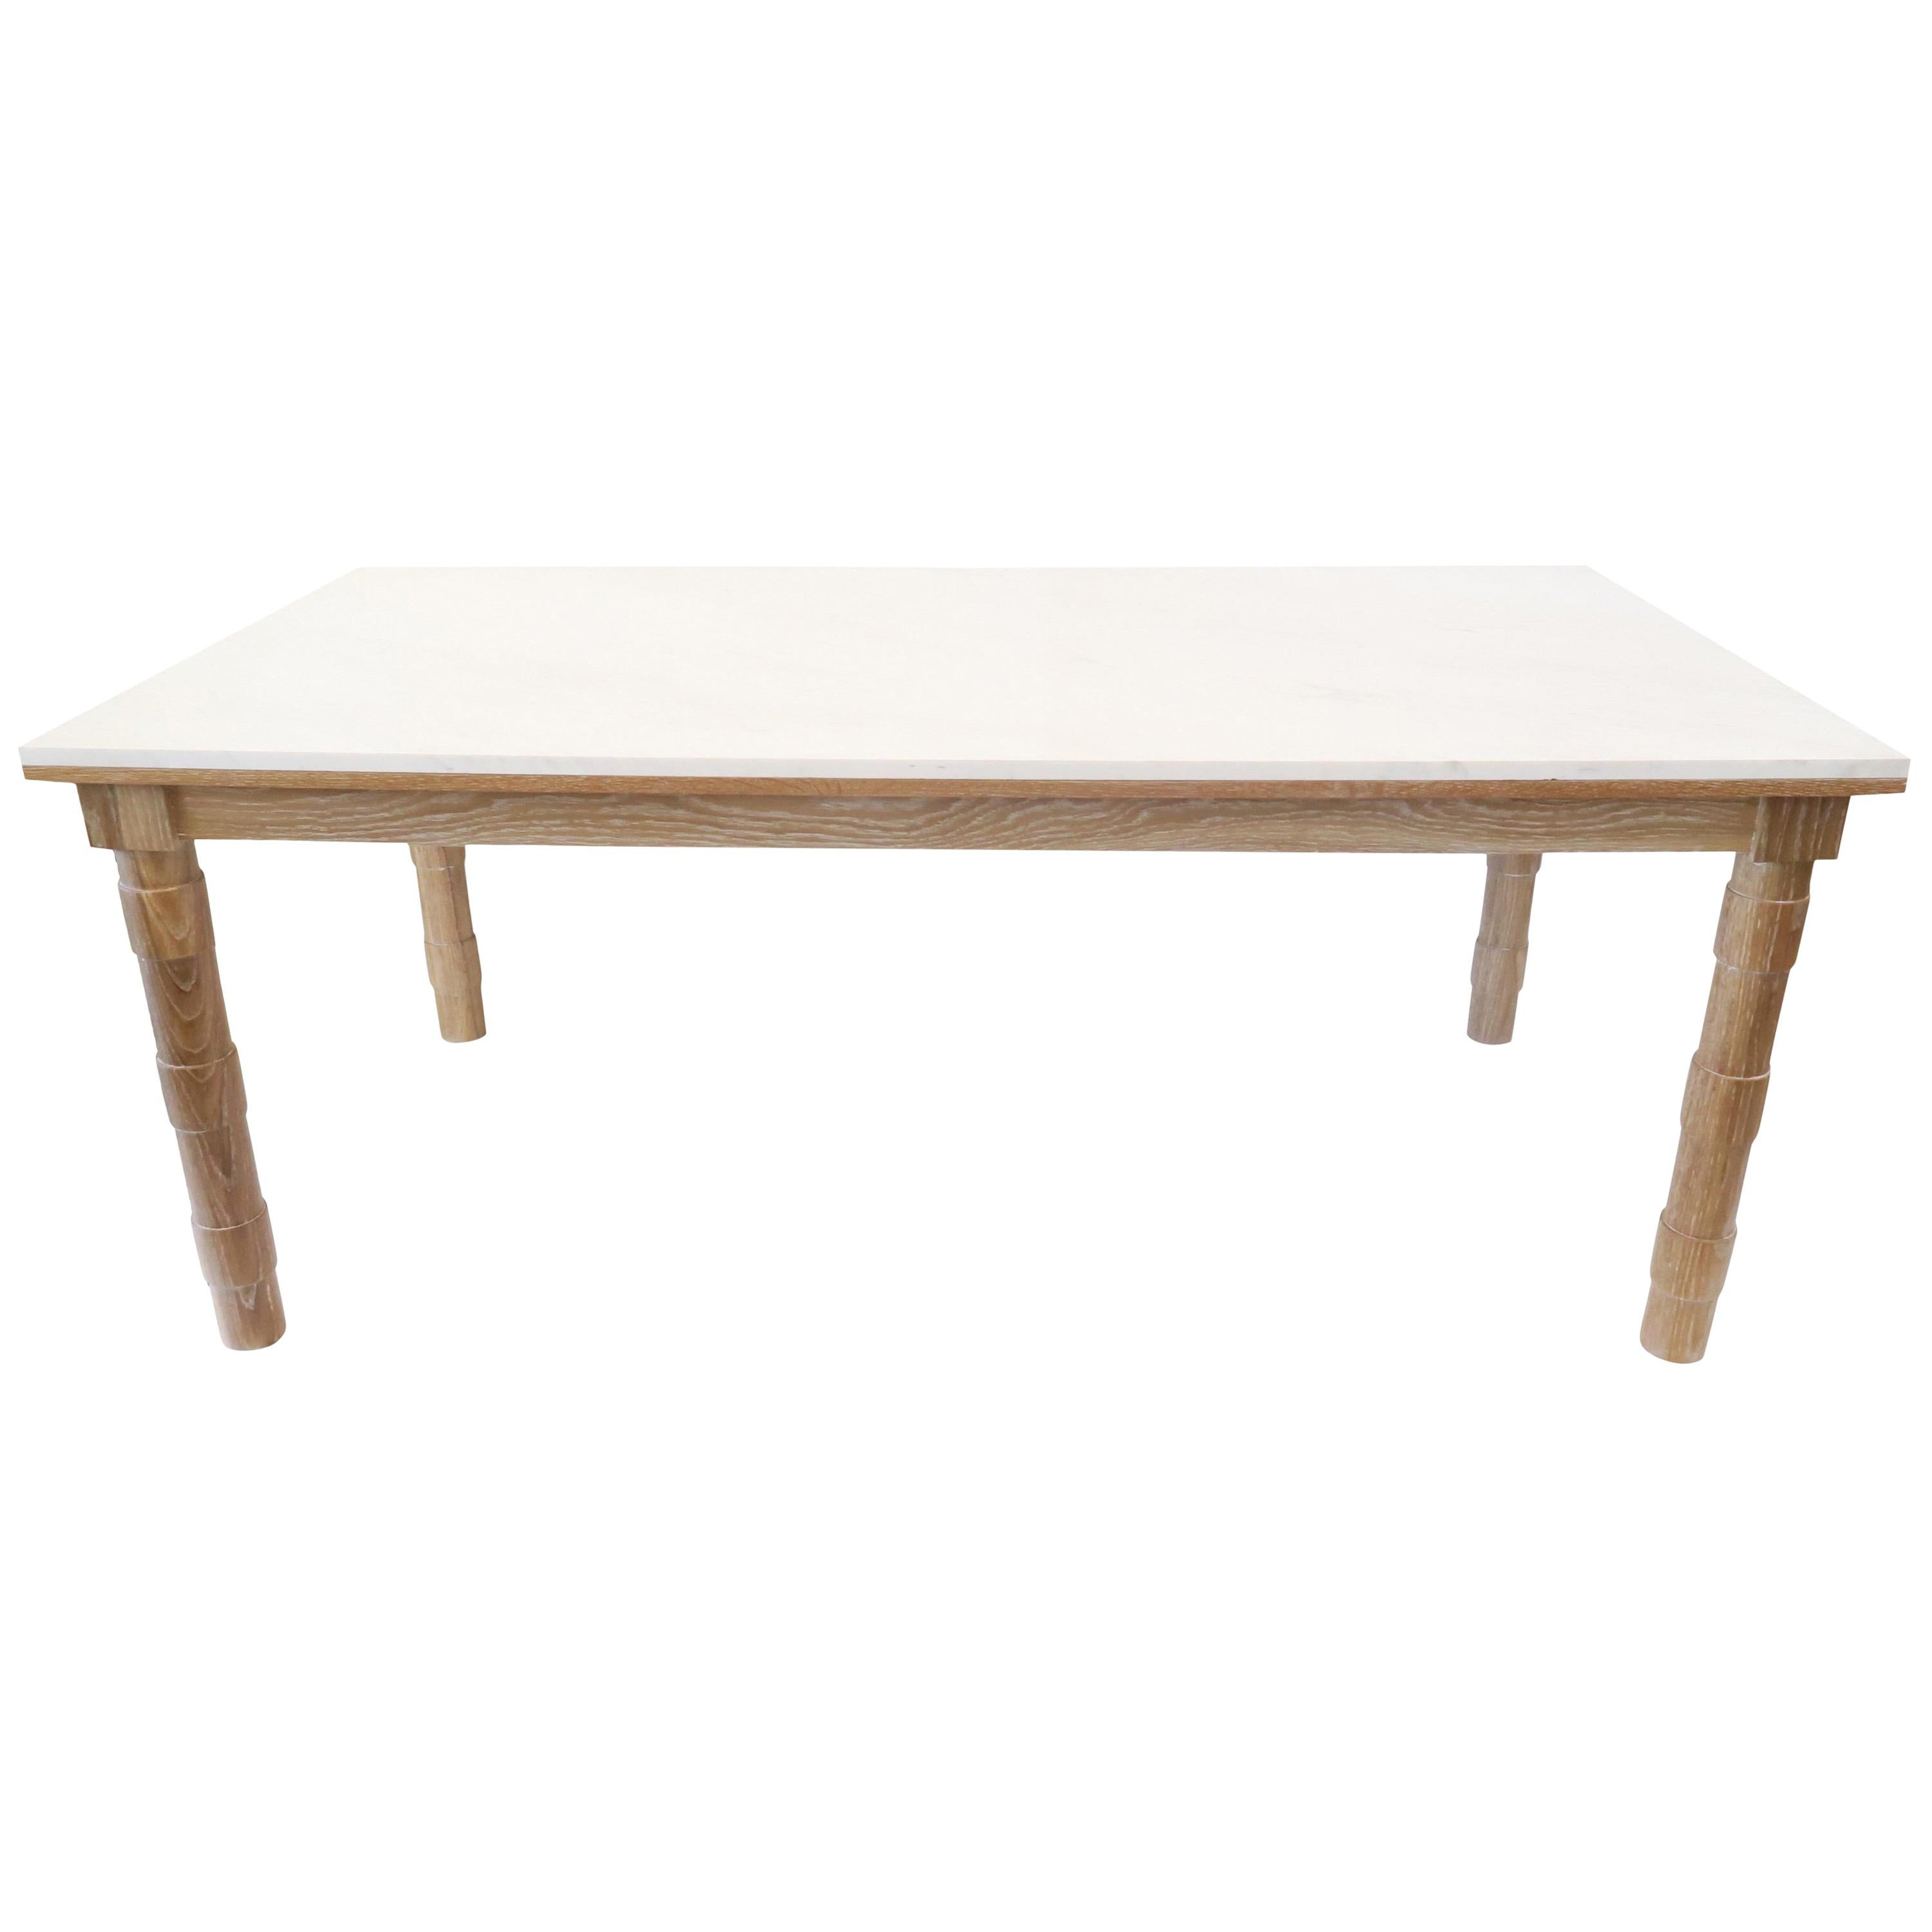 Transitional Turned Leg Dining Table Oak Marble Top by Martin and Brockett Brown